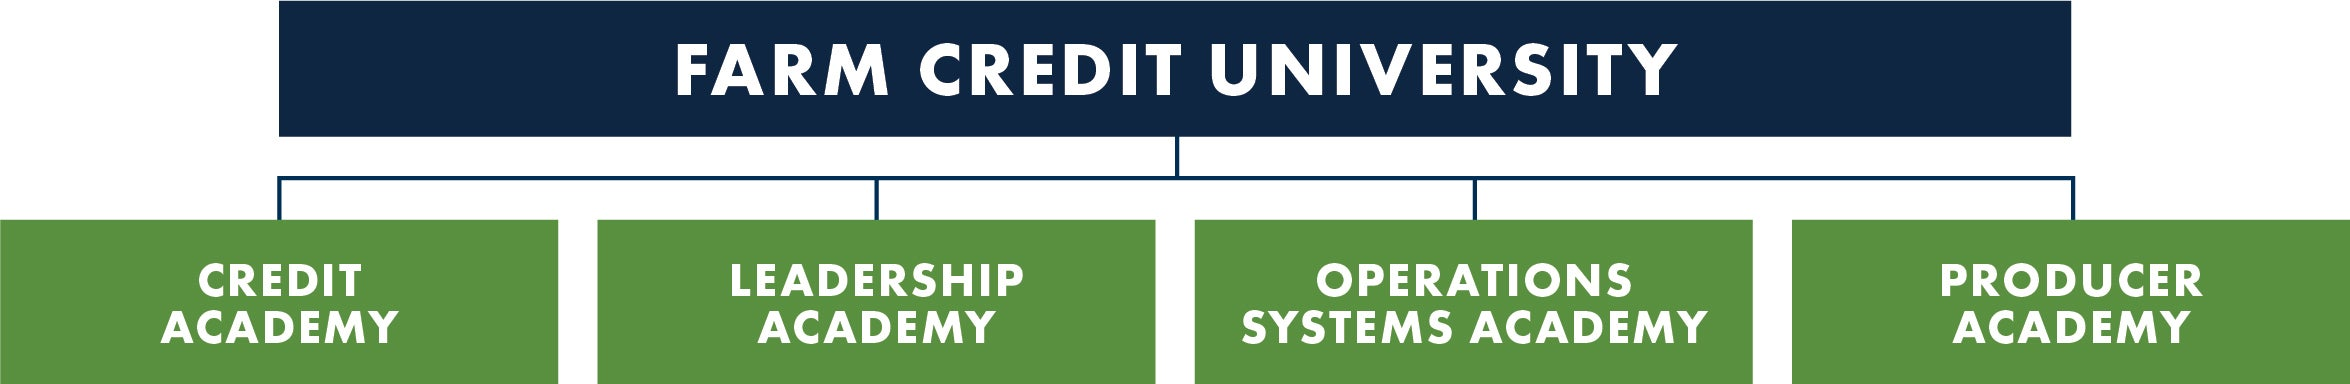 Farm Credit University: Credit Academy, Leadership Academy, Operations Systems Academy, and Producer Academy